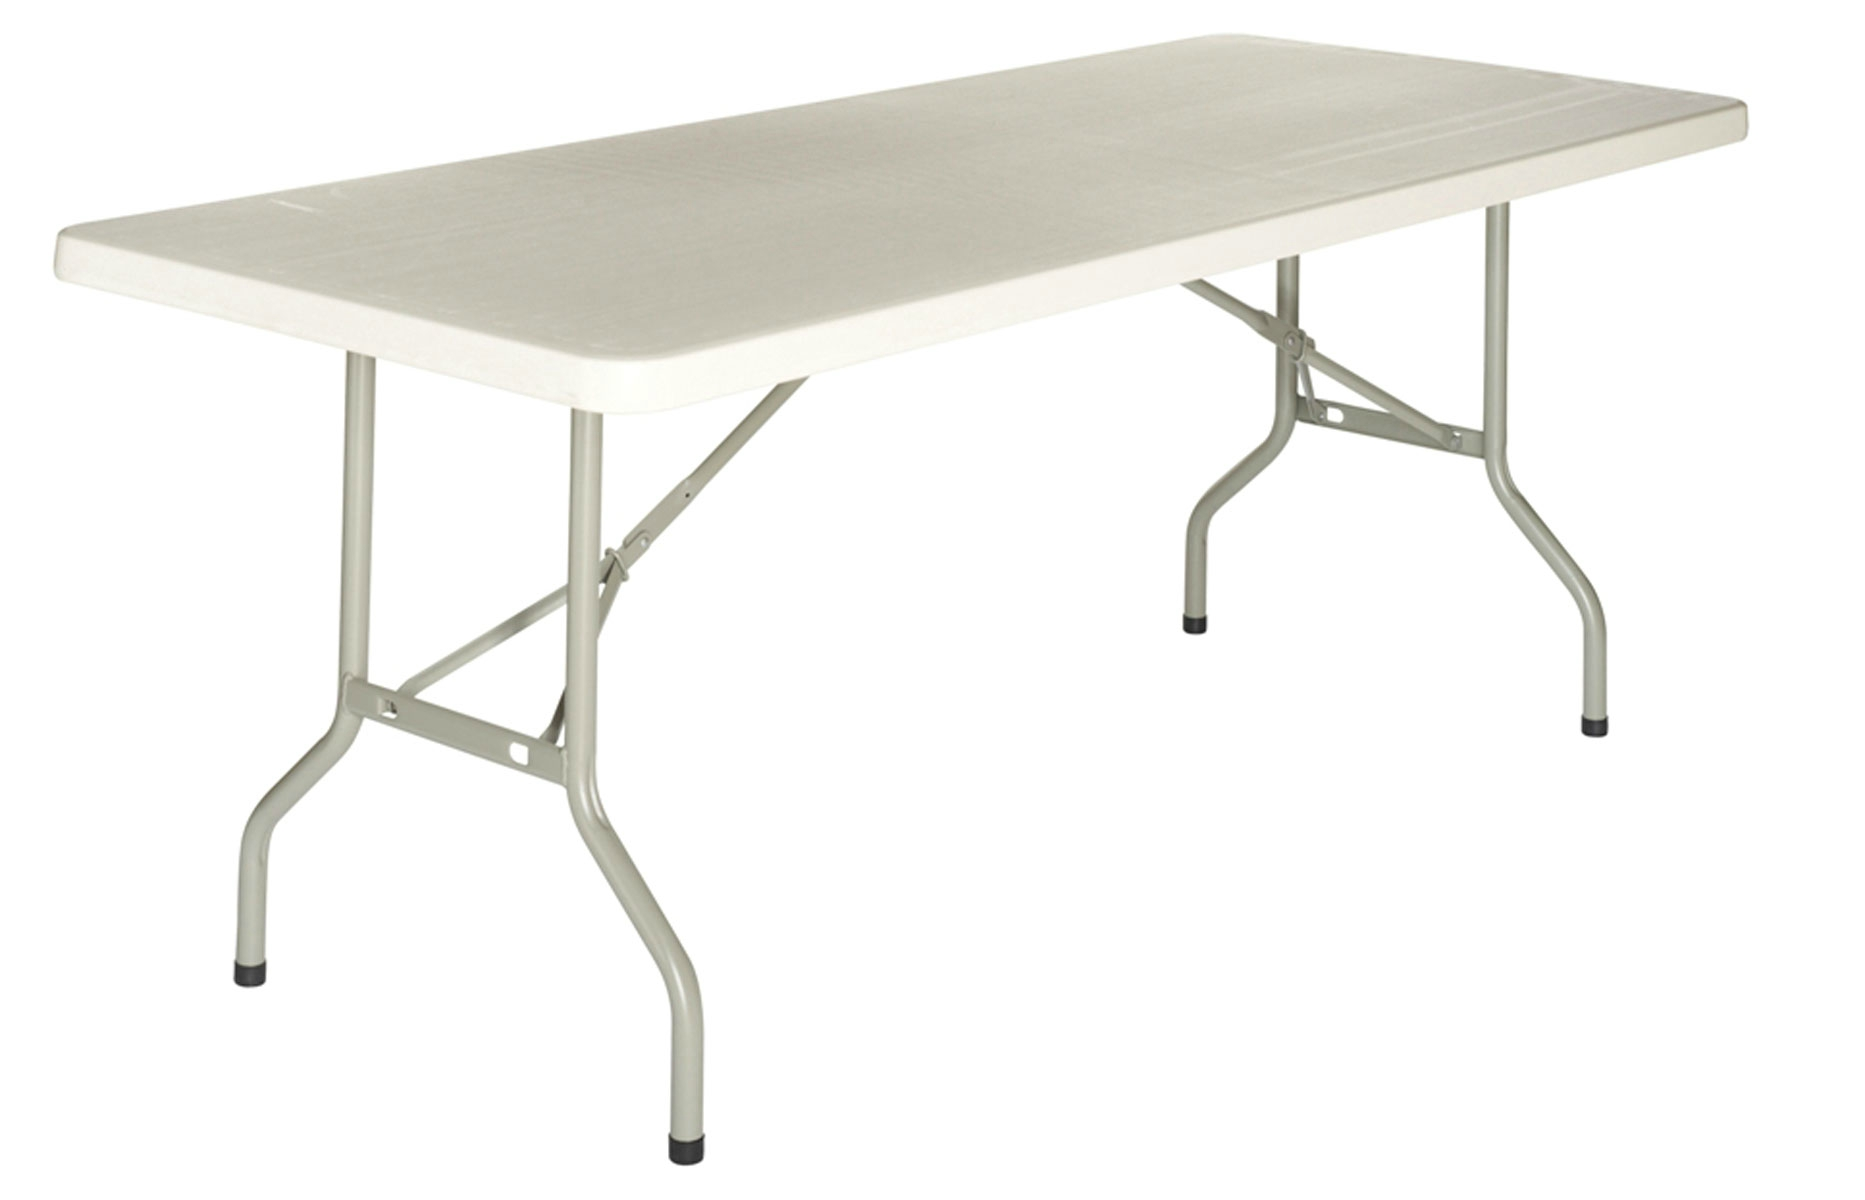 Table Pliante Castorama | hollandschewind